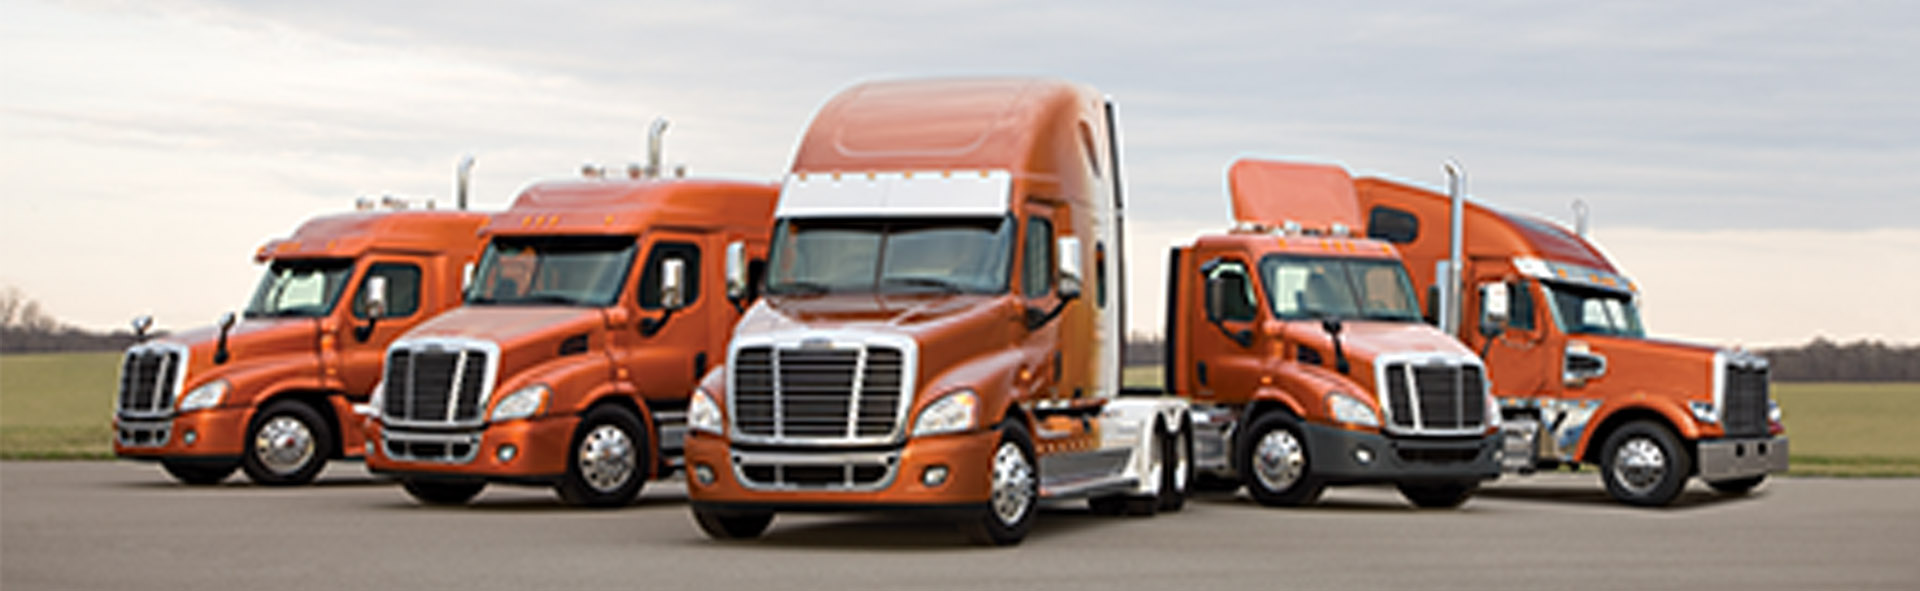 freightliner-trucks-orange